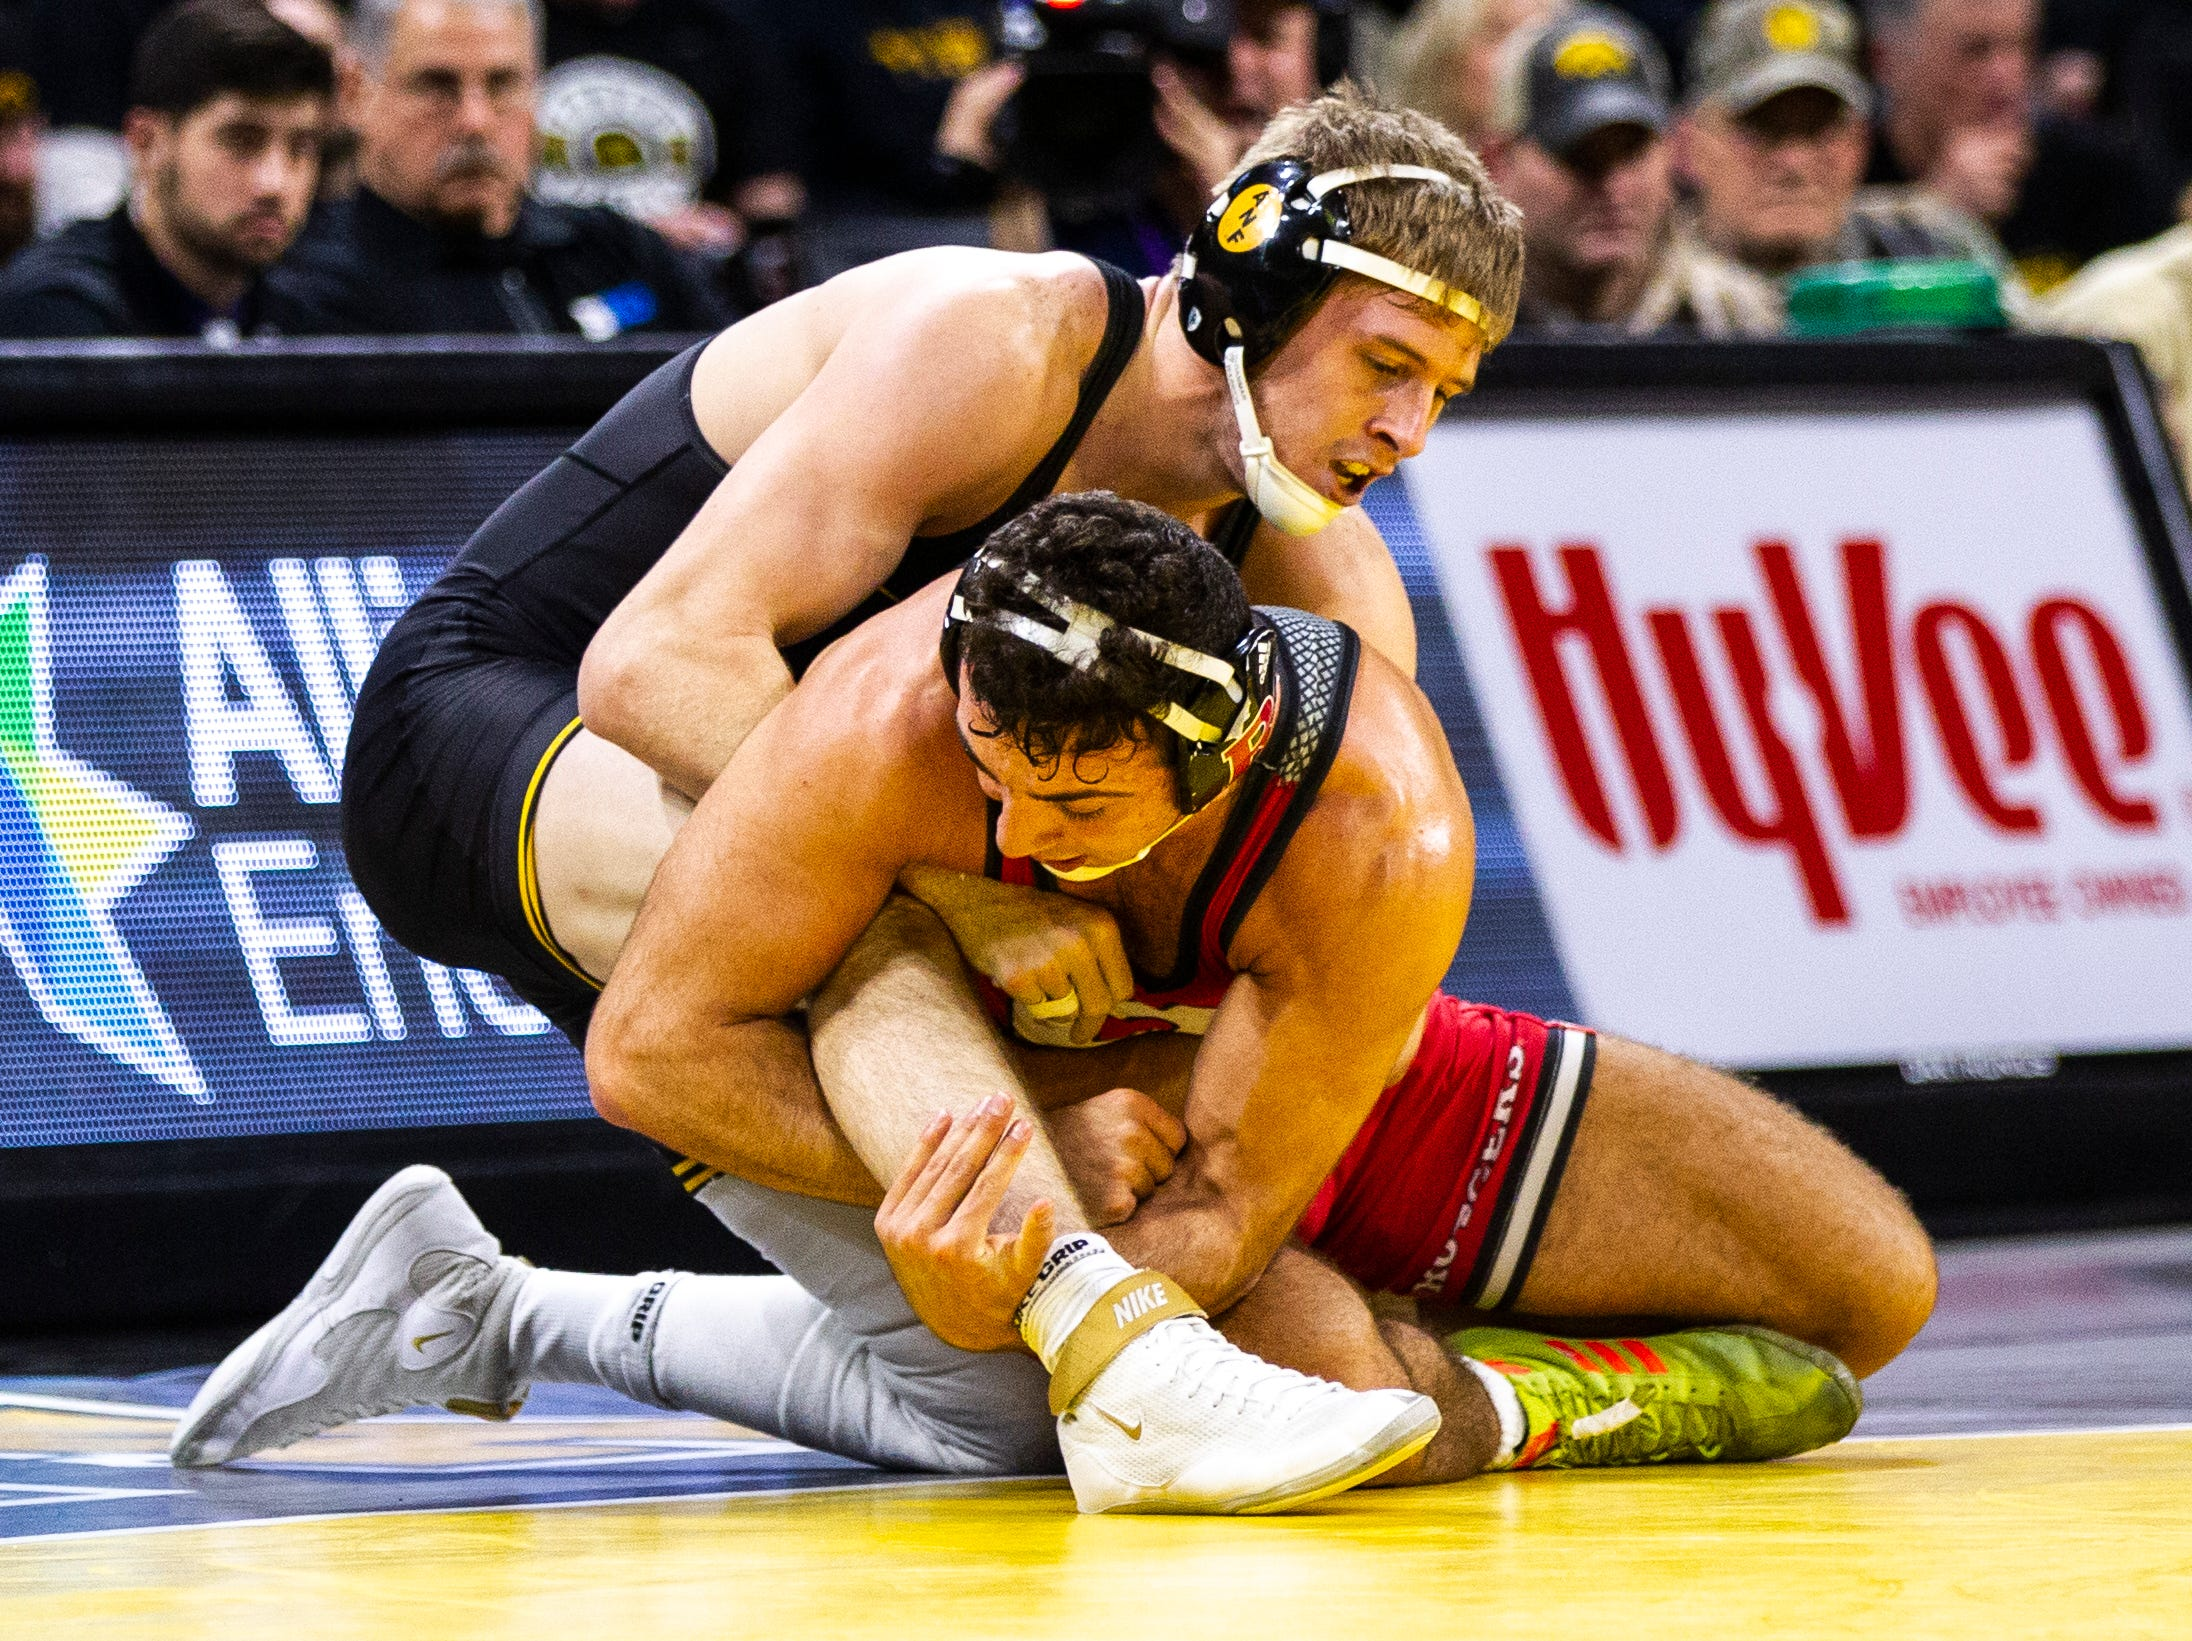 Iowa's Mitch Bowman, top, wrestles Rutgers' Joseph Grello at 174 during a NCAA Big Ten Conference wrestling dual on Friday, Jan. 18, 2019, at Carver-Hawkeye Arena in Iowa City, Iowa.